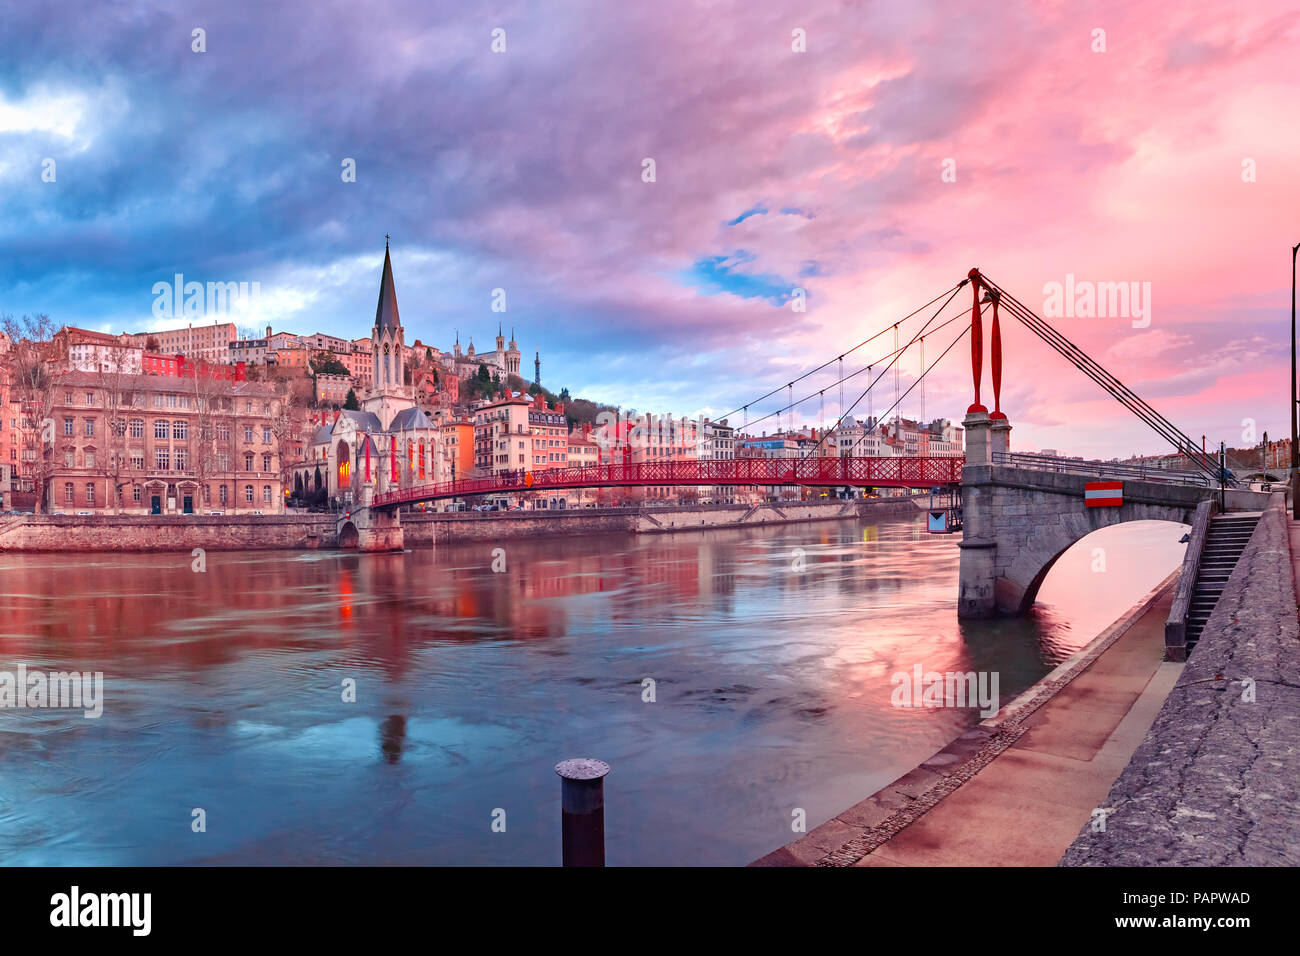 Old town of Lyon at gorgeous sunset, France Stock Photo